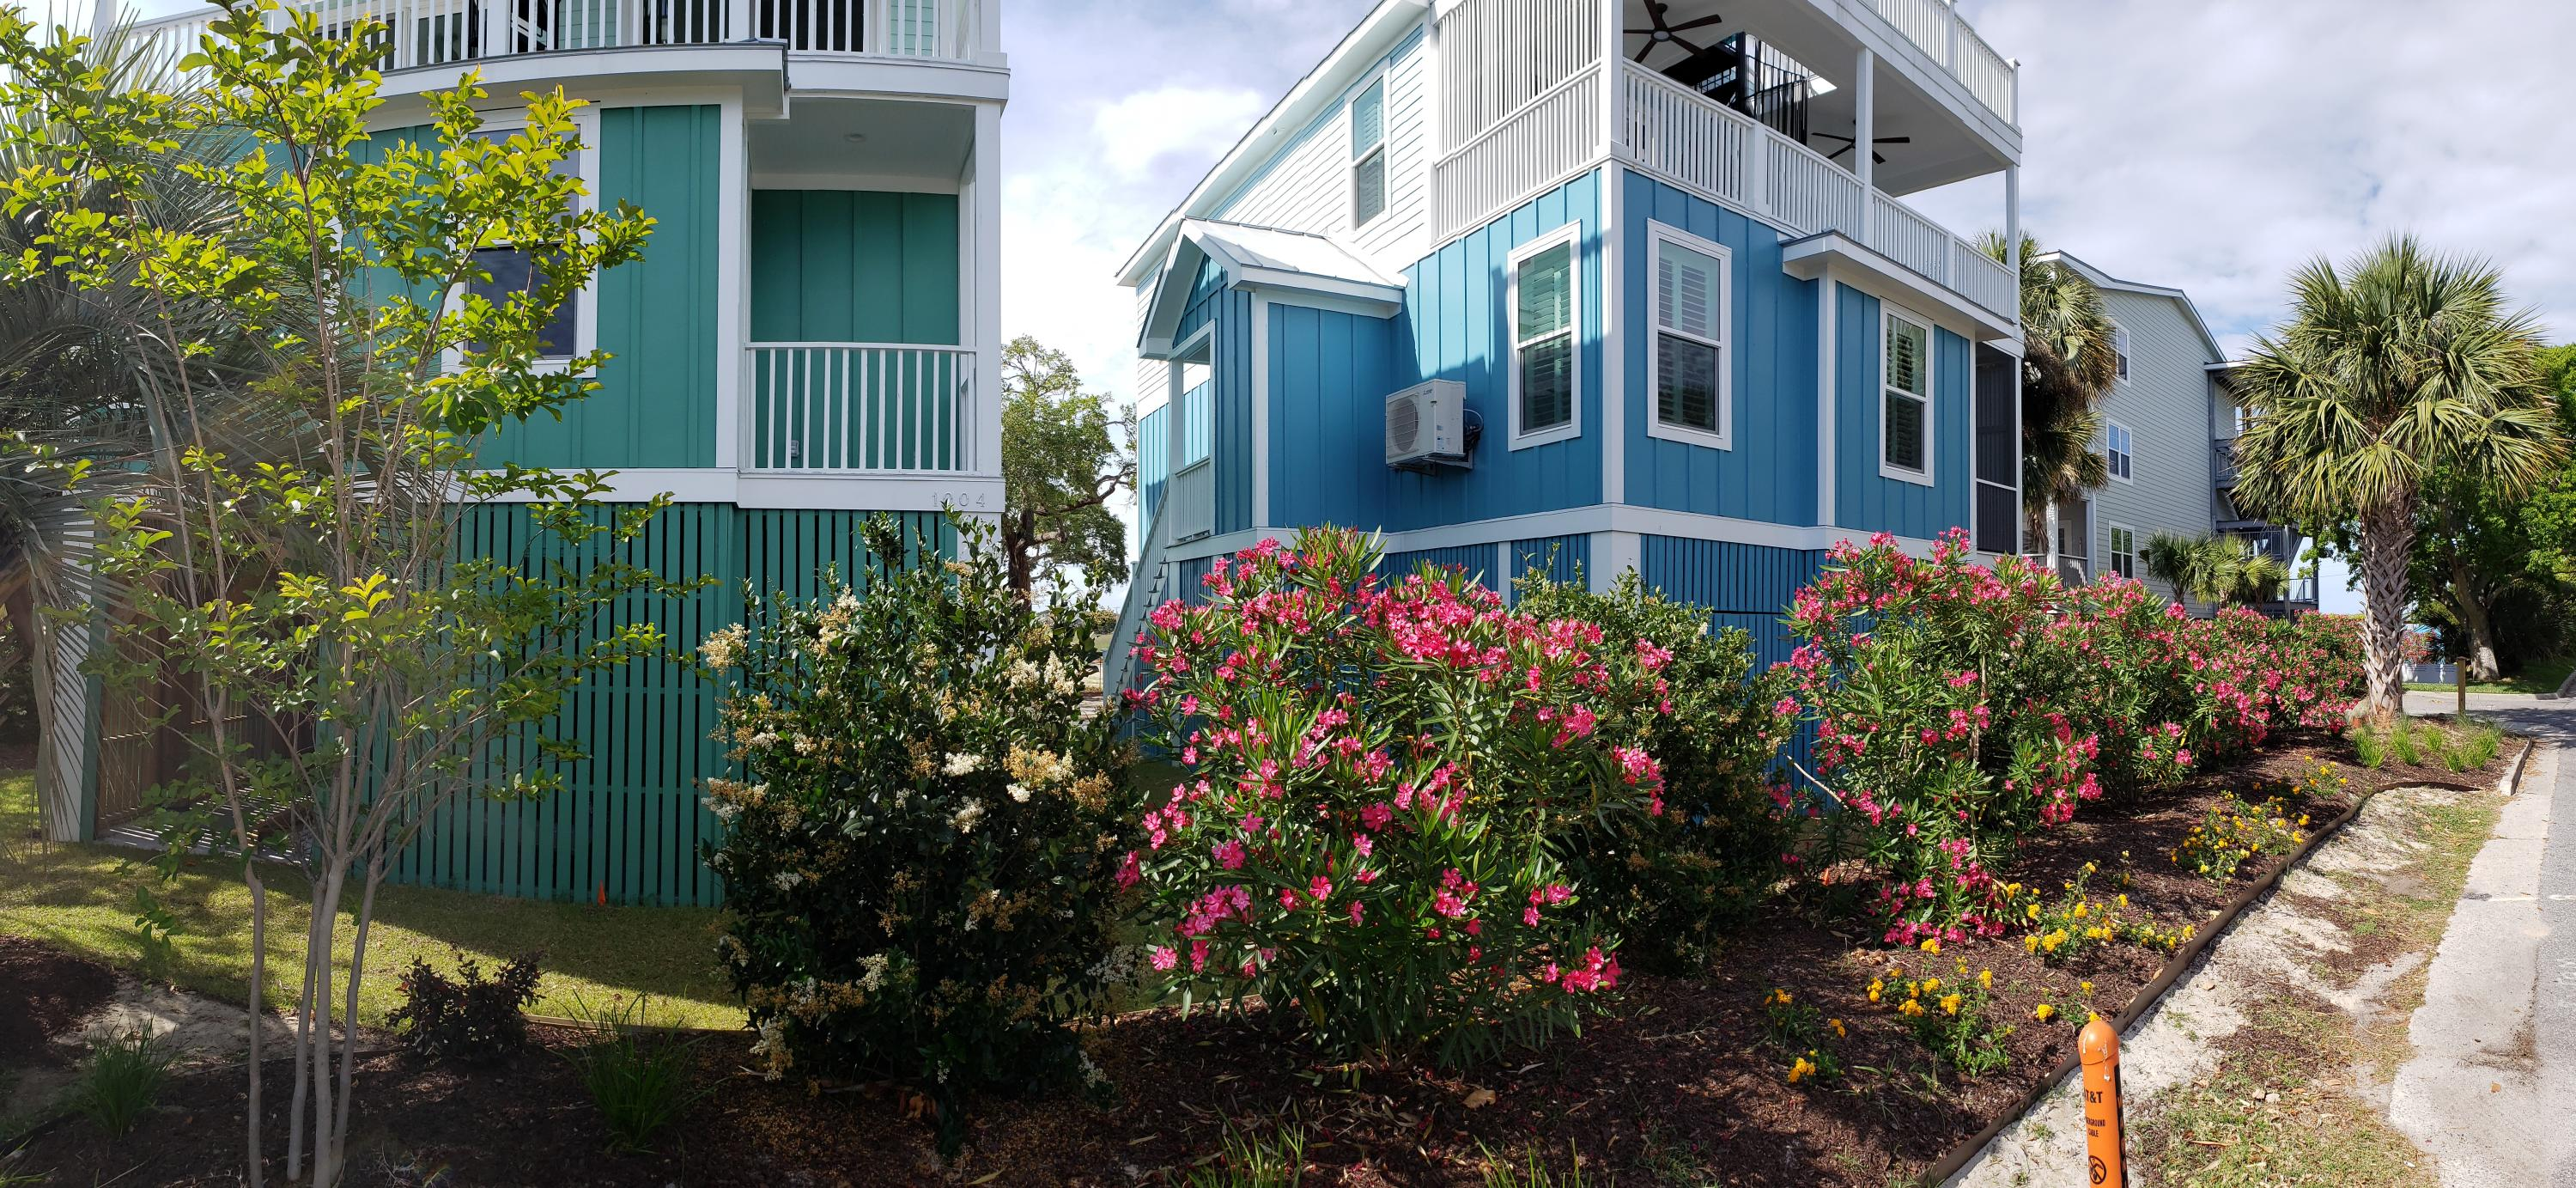 Mariners Cay Homes For Sale - 1004 Mariners Cay, Folly Beach, SC - 59